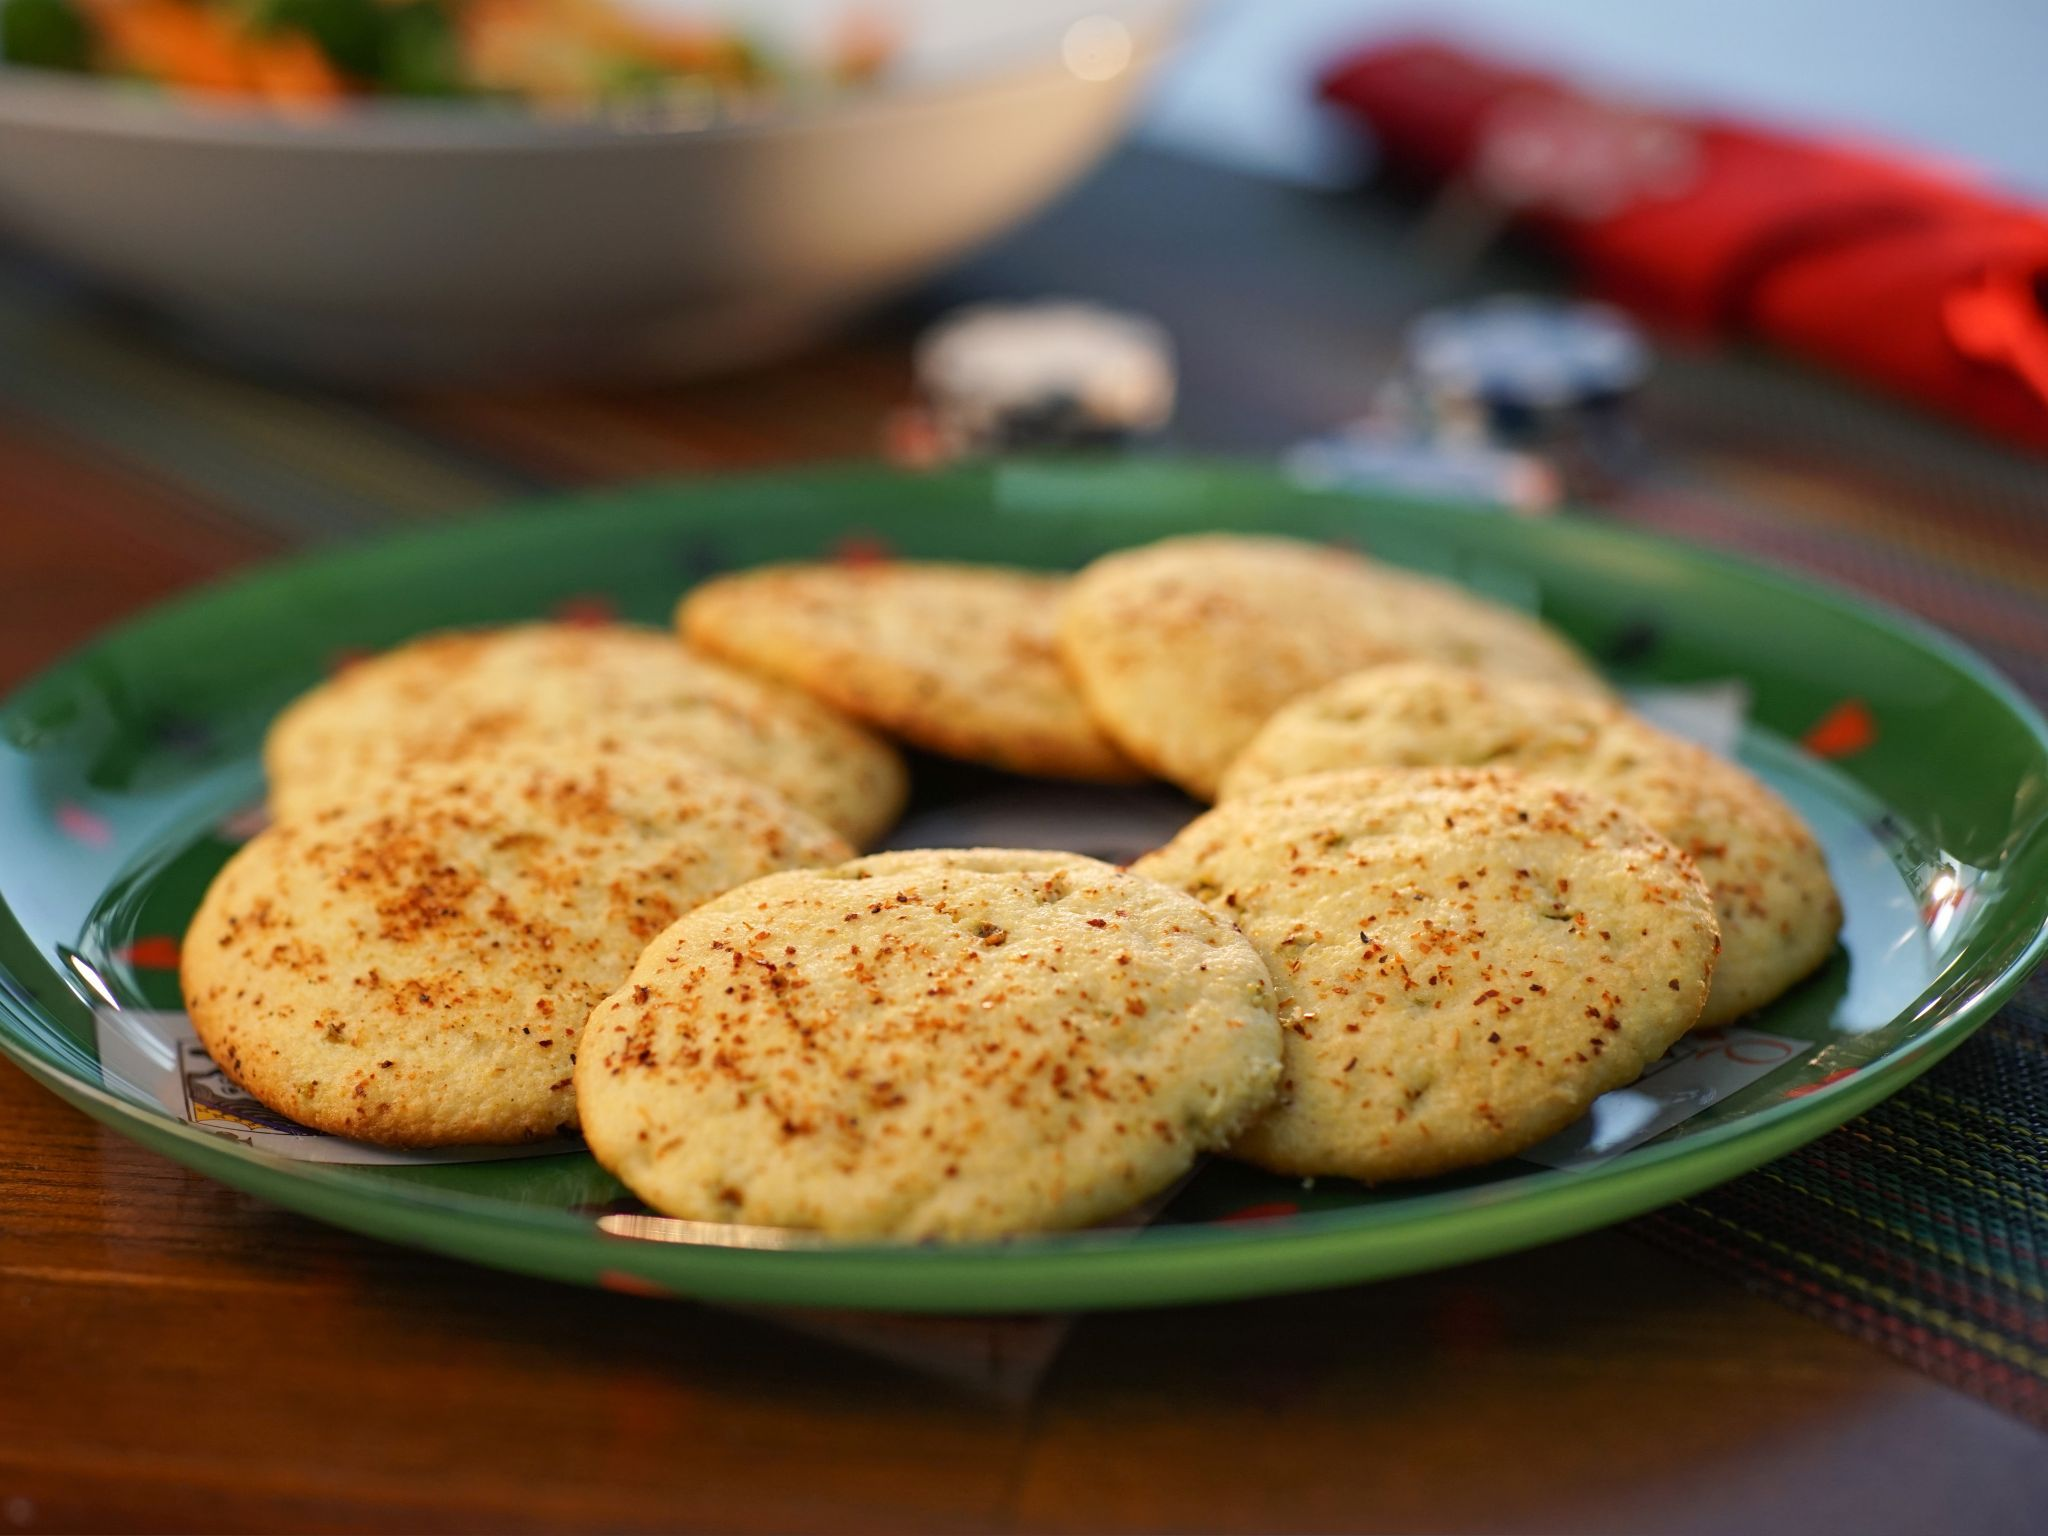 Sweet and savory cornbread cookies recipe valerie bertinelli dishes sweet and savory cornbread cookies recipe from valerie bertinelli via food network forumfinder Choice Image